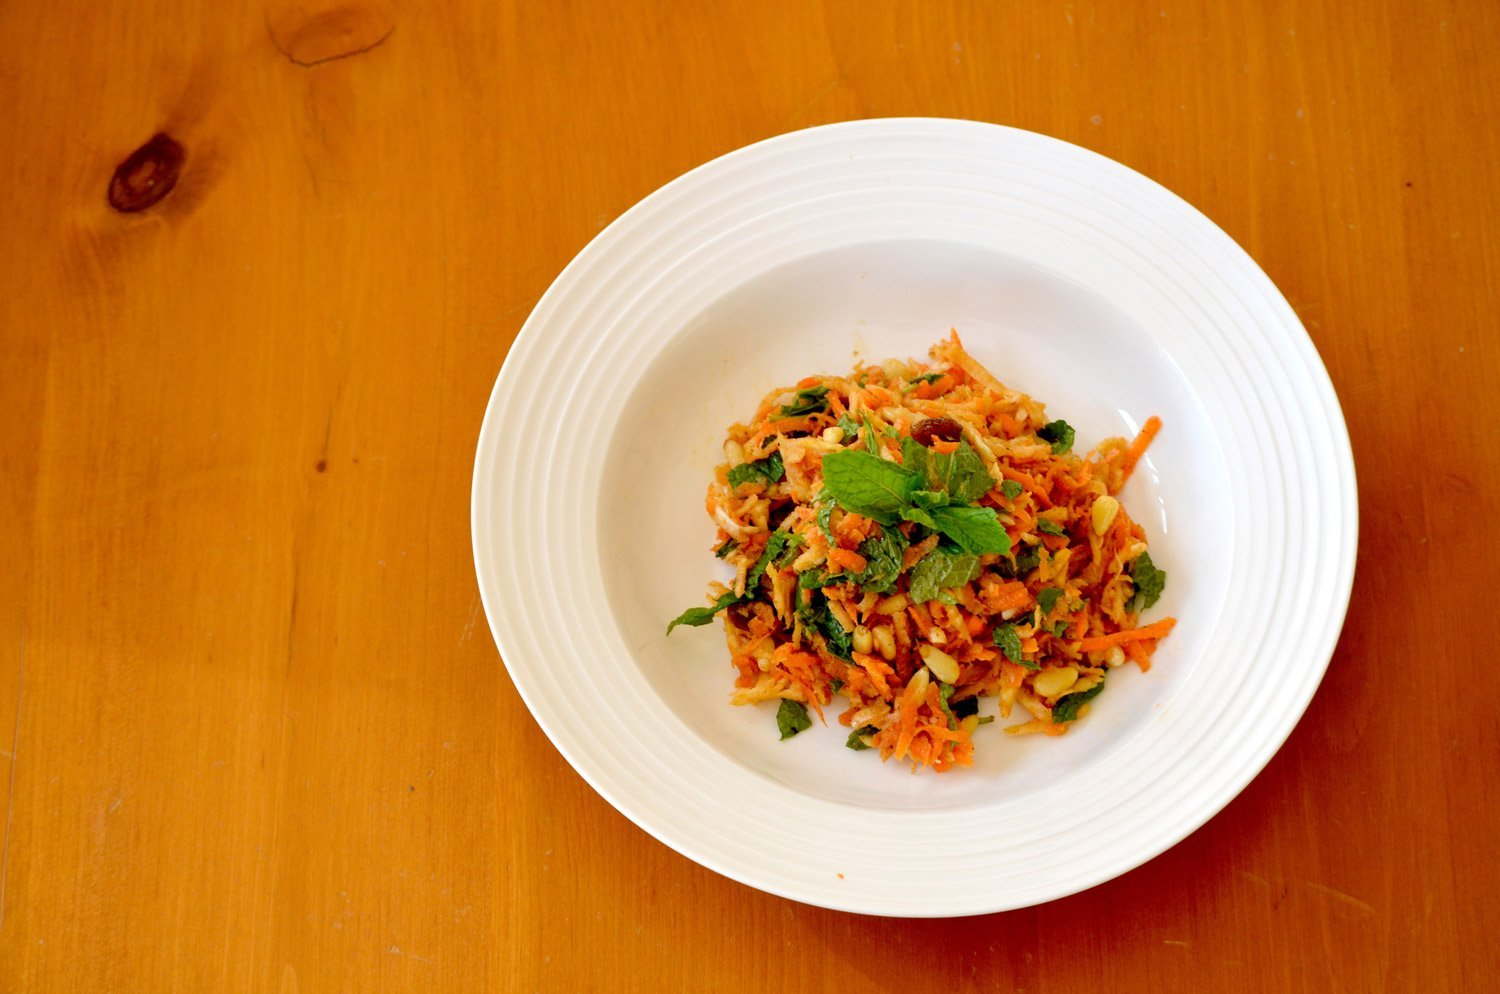 Moroccan-style Carrot & Parsnip Salad